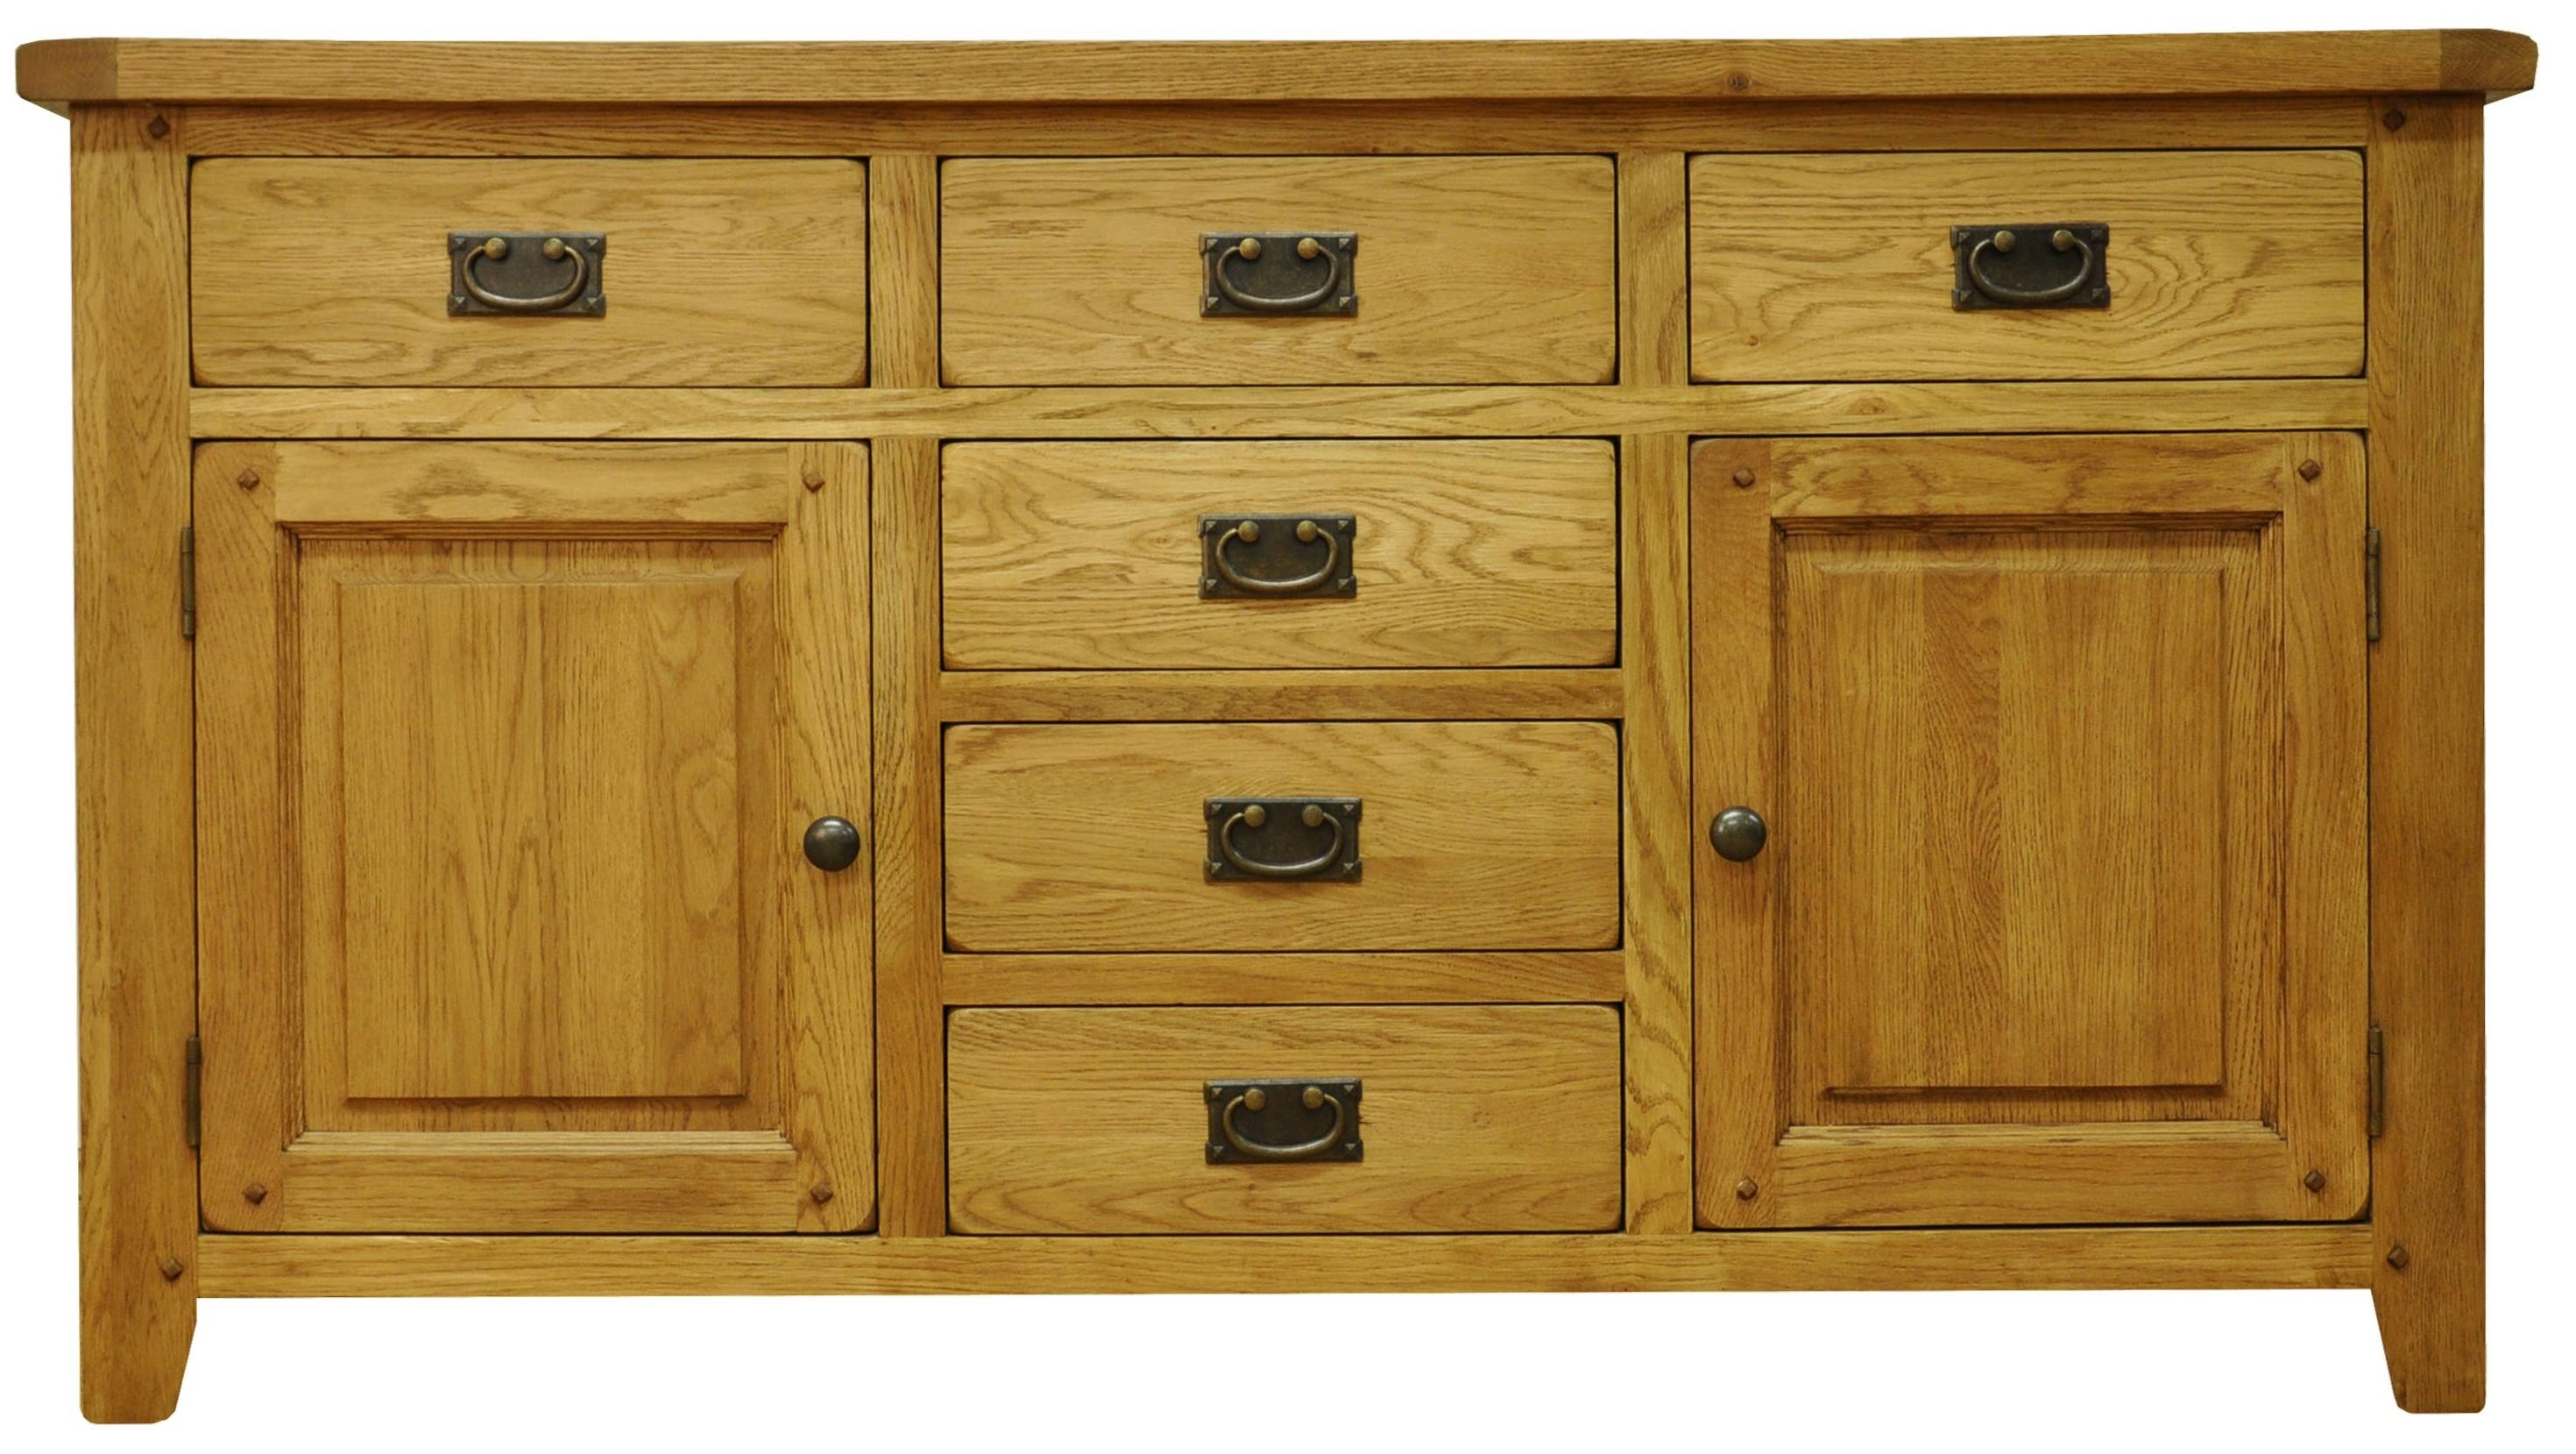 Oldbury Rustic Oak Sideboard With 2 Doors And 6 Drawersstanton in Oak Sideboards With Wine Rack (Image 12 of 30)